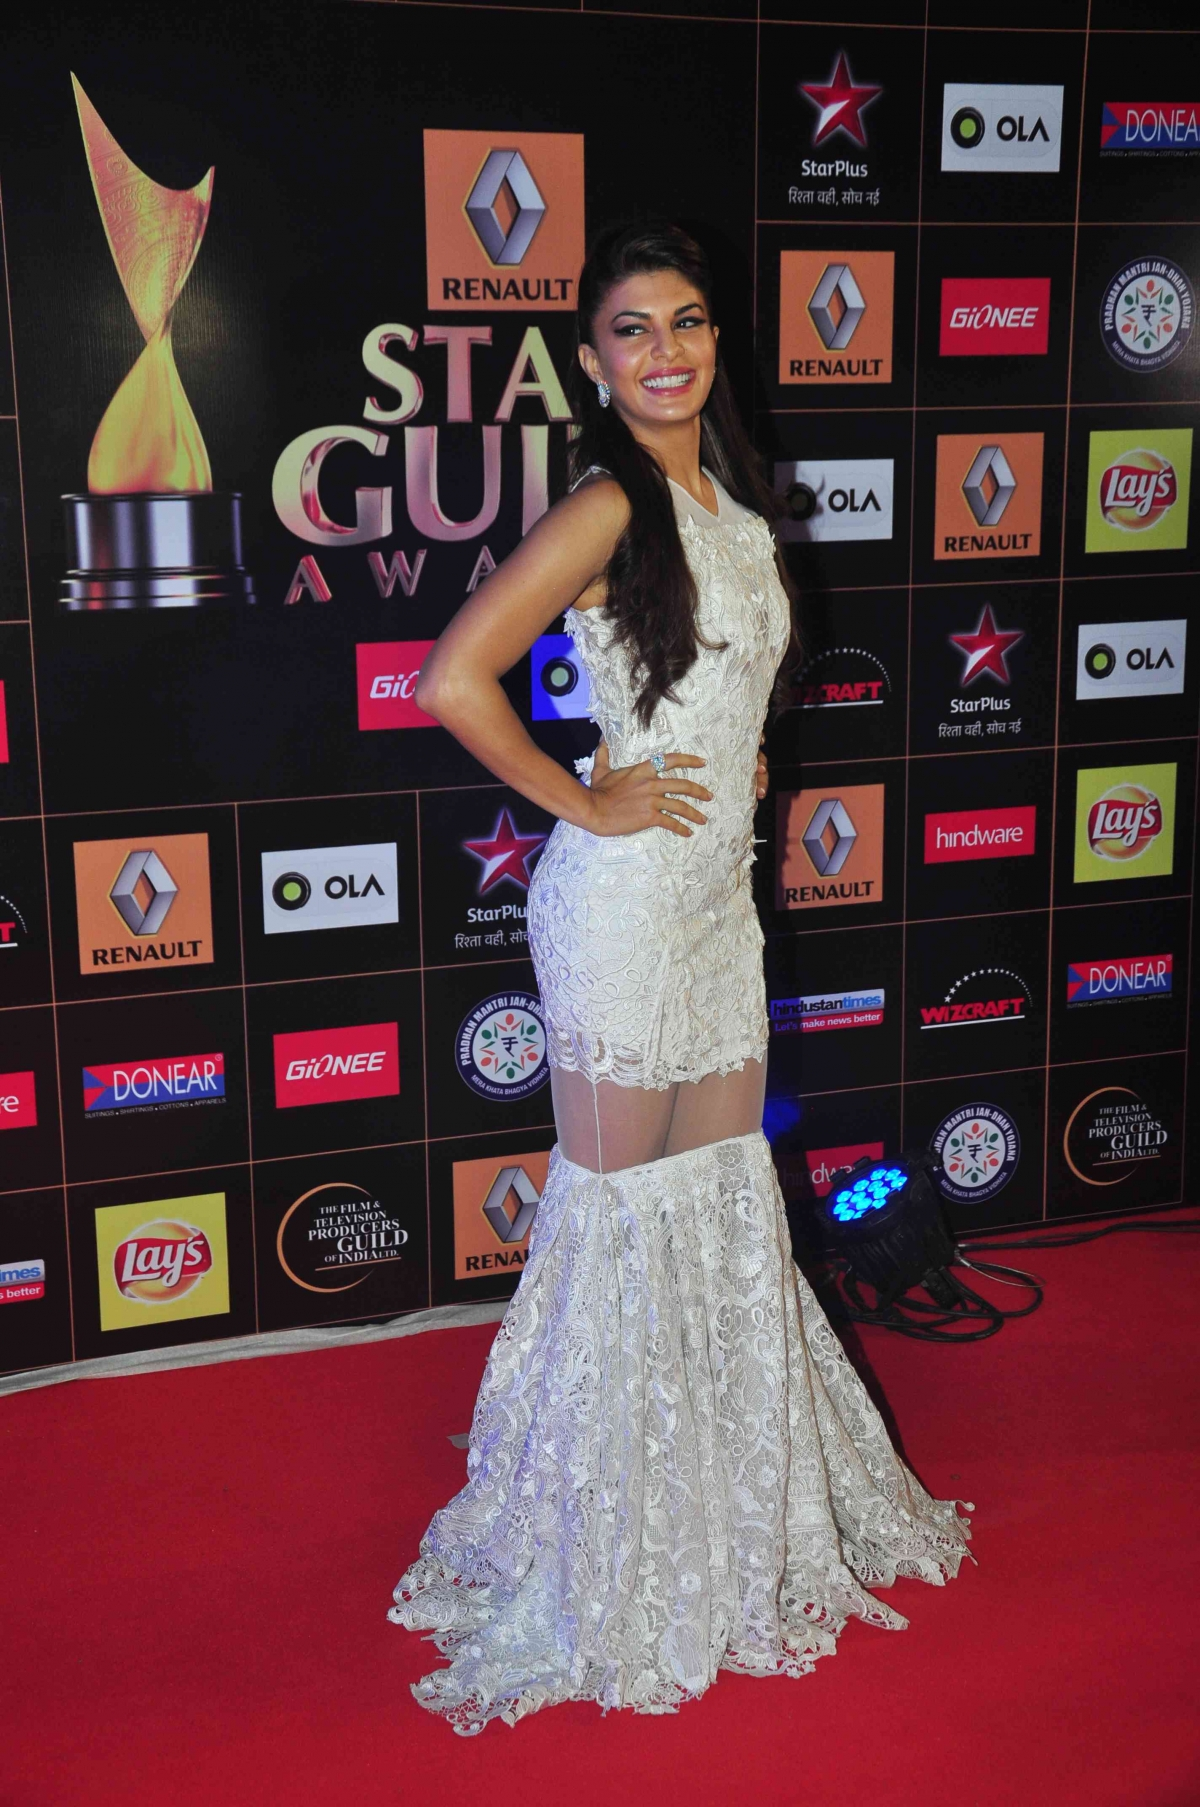 Star Guild Awards 2015: Celebs Sizzle on Red Carpet [PHOTOS]